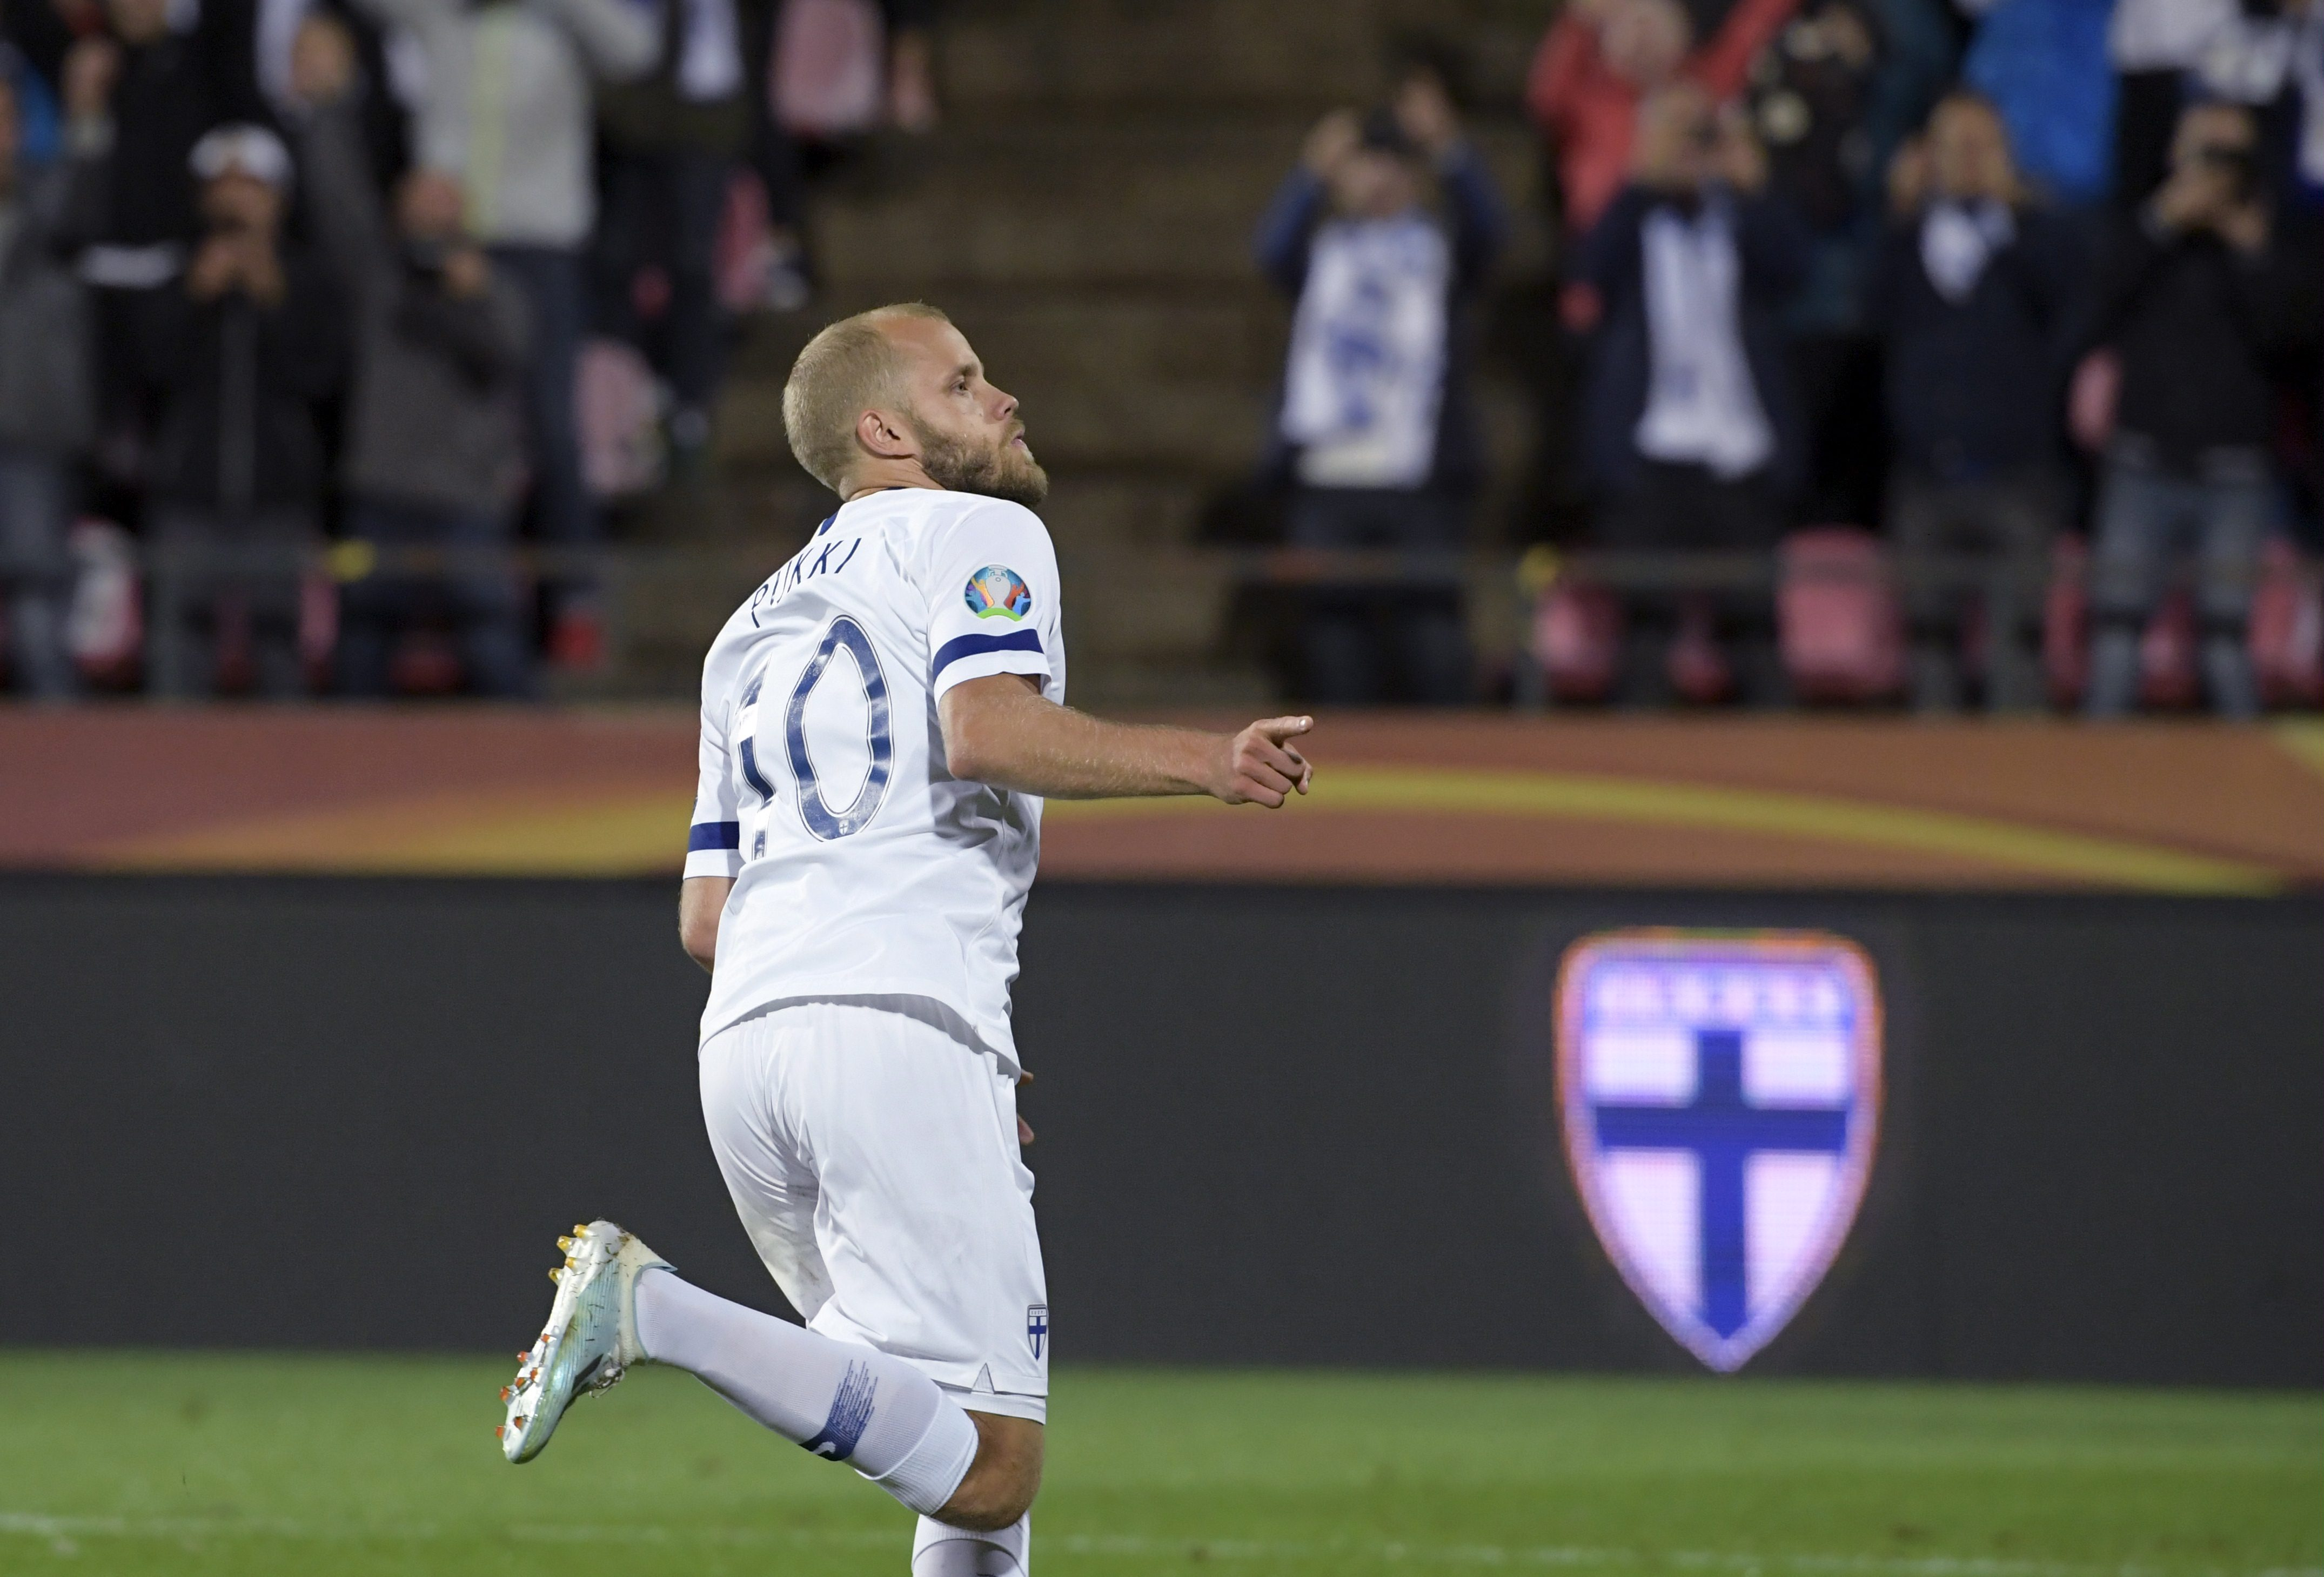 Will Teemu Pukki be fit in time to lead Finland's charge? (Photo by Markku Ulander/AFP/Getty Images)